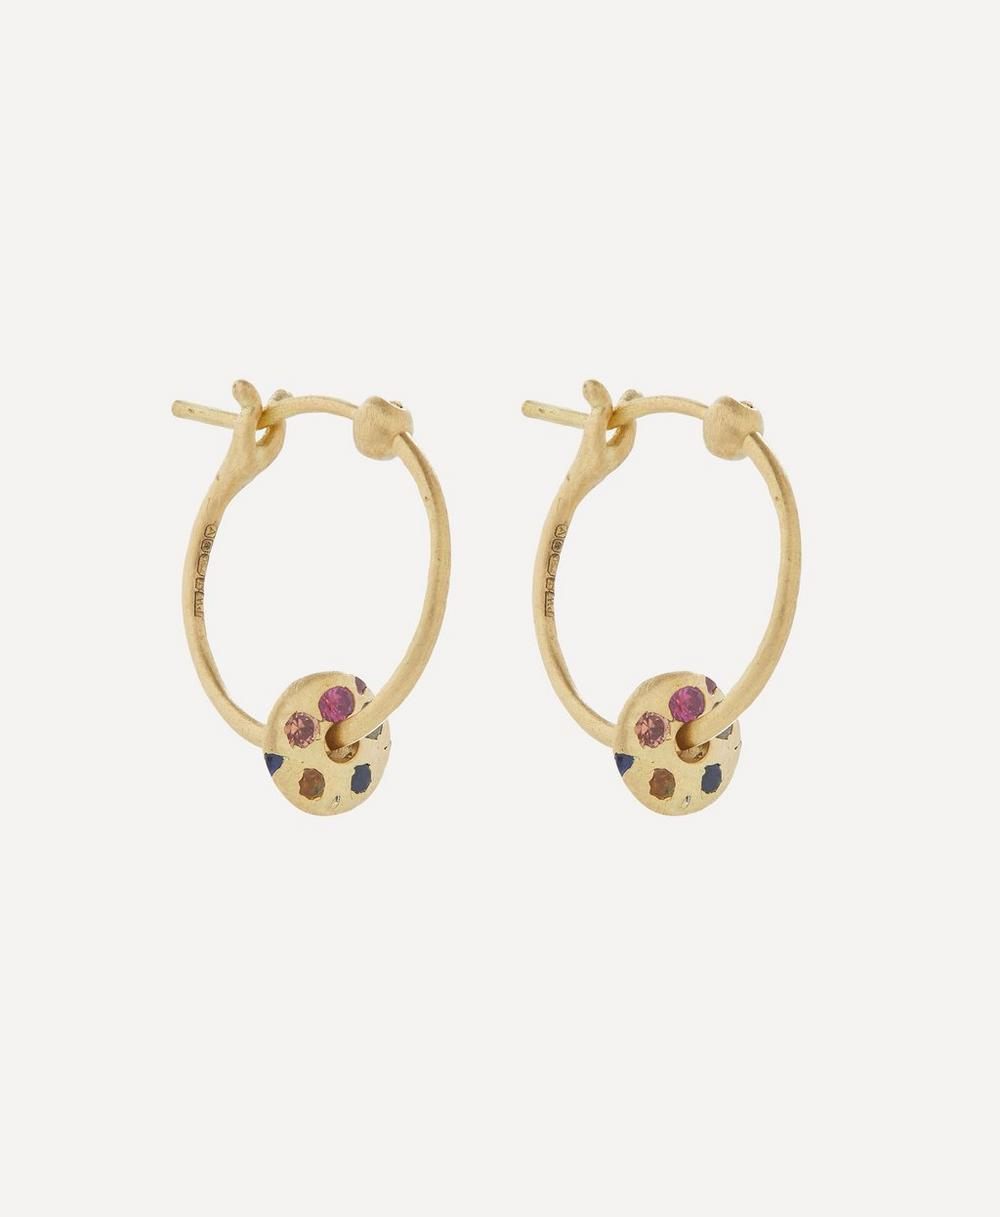 Polly Wales - Gold Mini Rainbow Sapphire Spinner Hoop Earrings